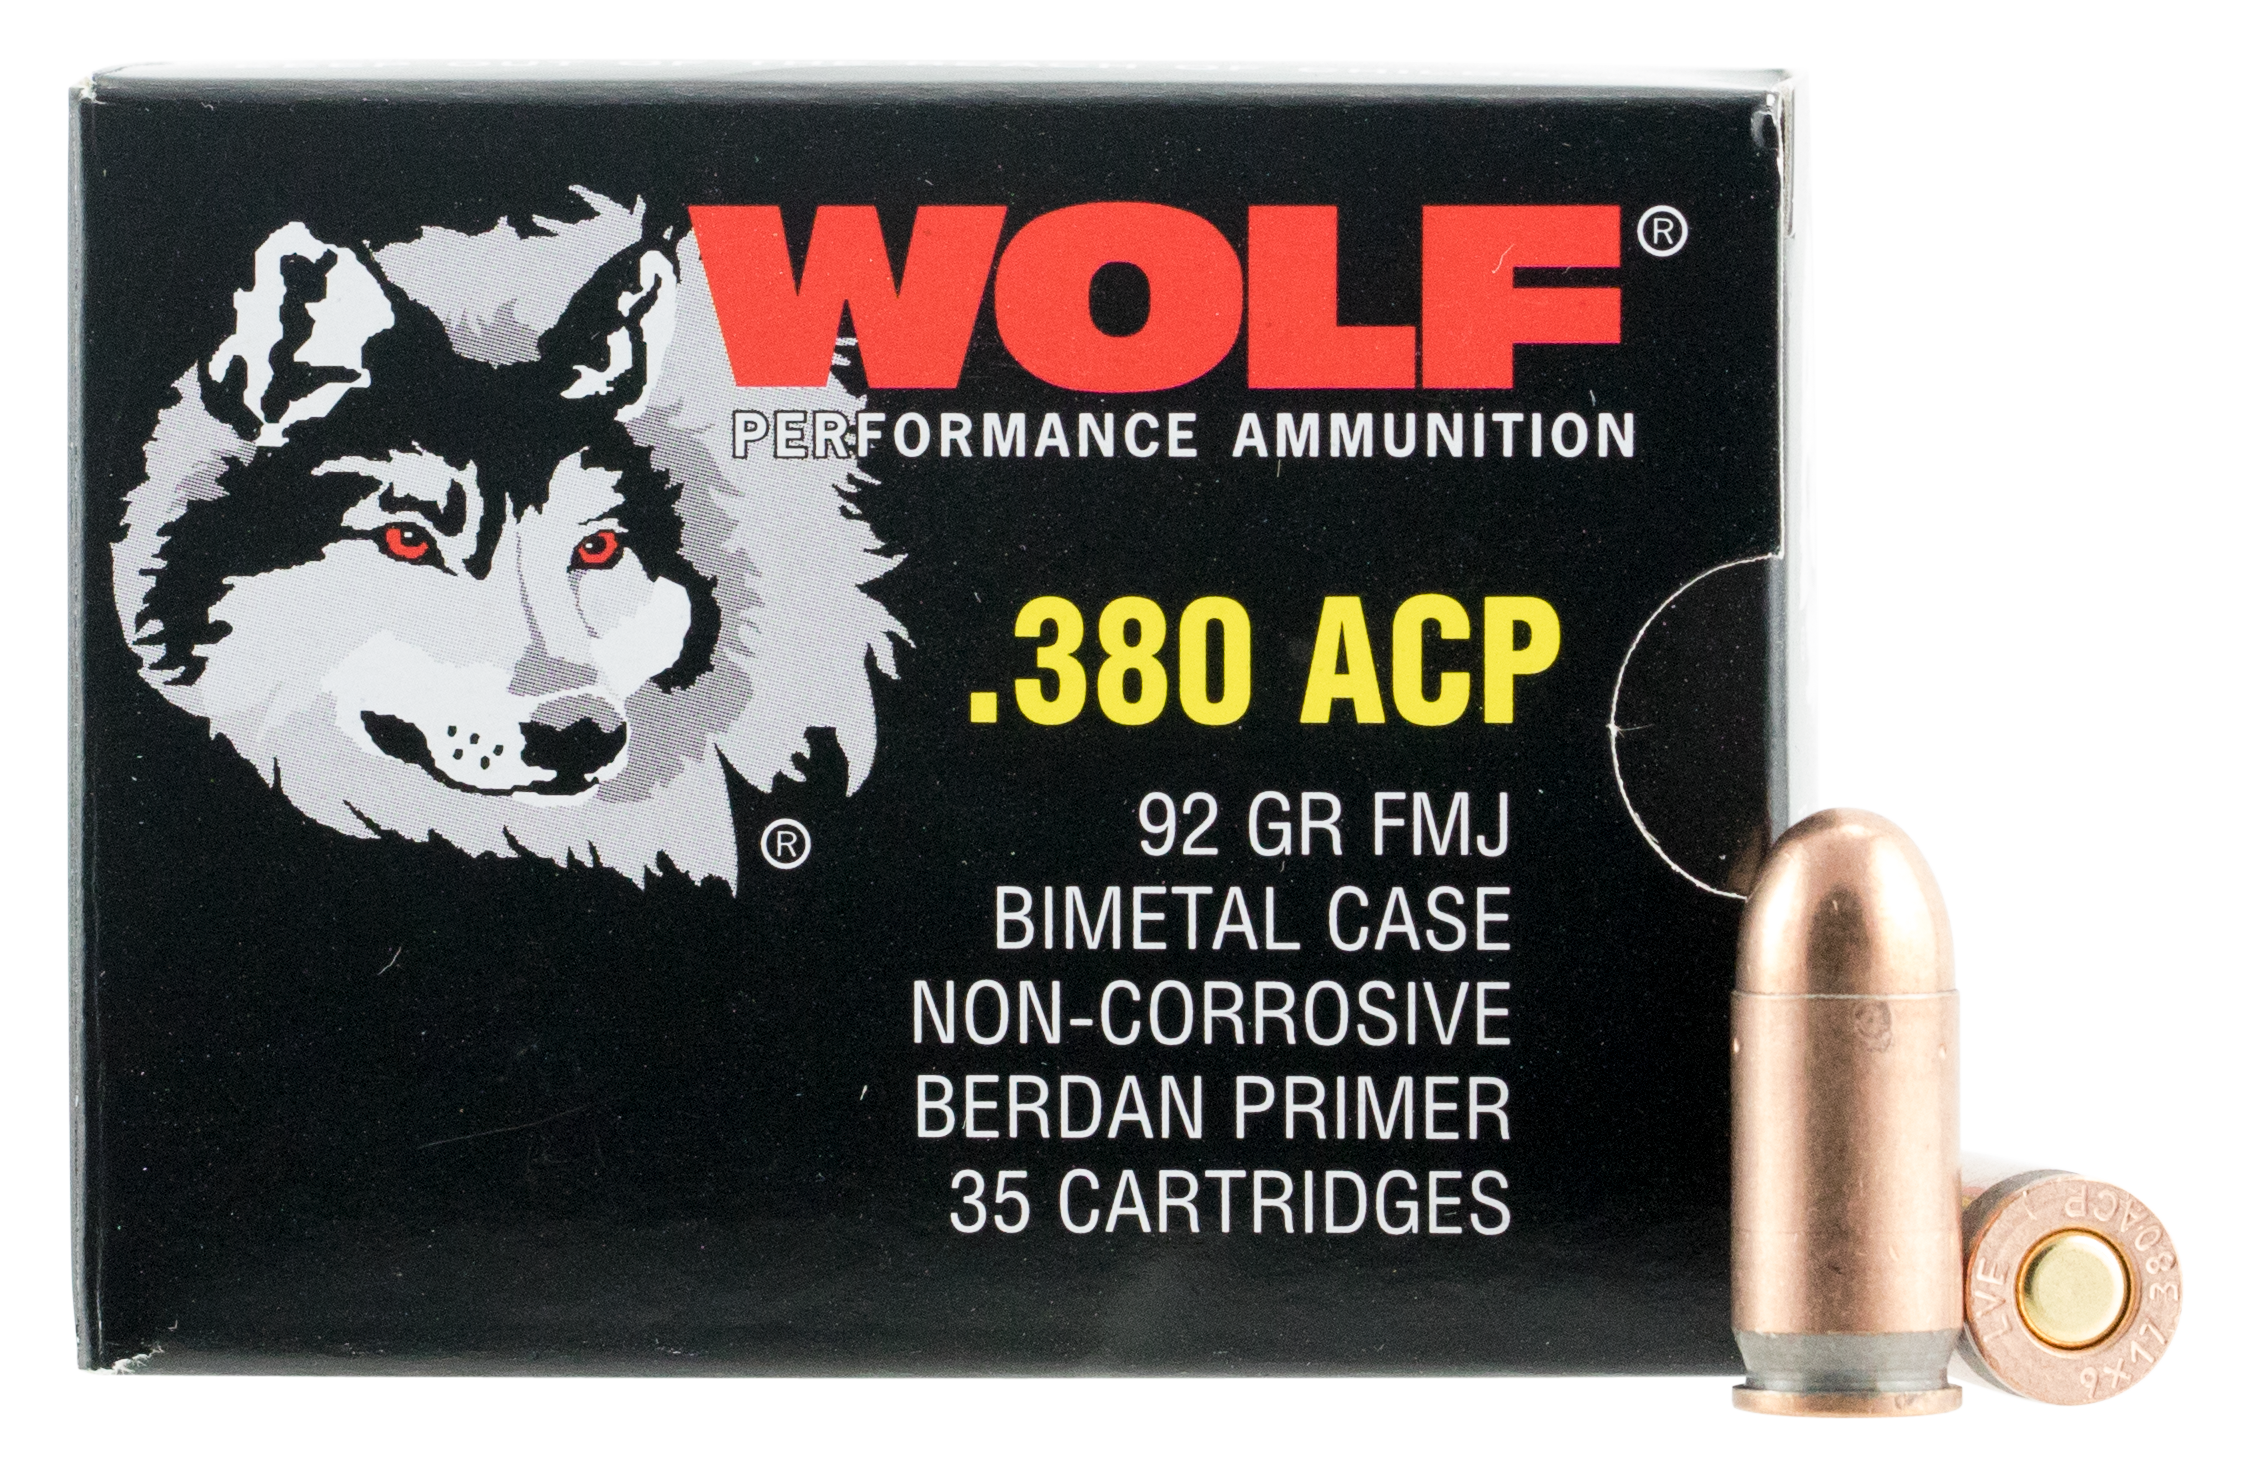 Wolf PolyFormance Ammunition 380 Auto (ACP) 91GR Full Metal Jacket Per 1000